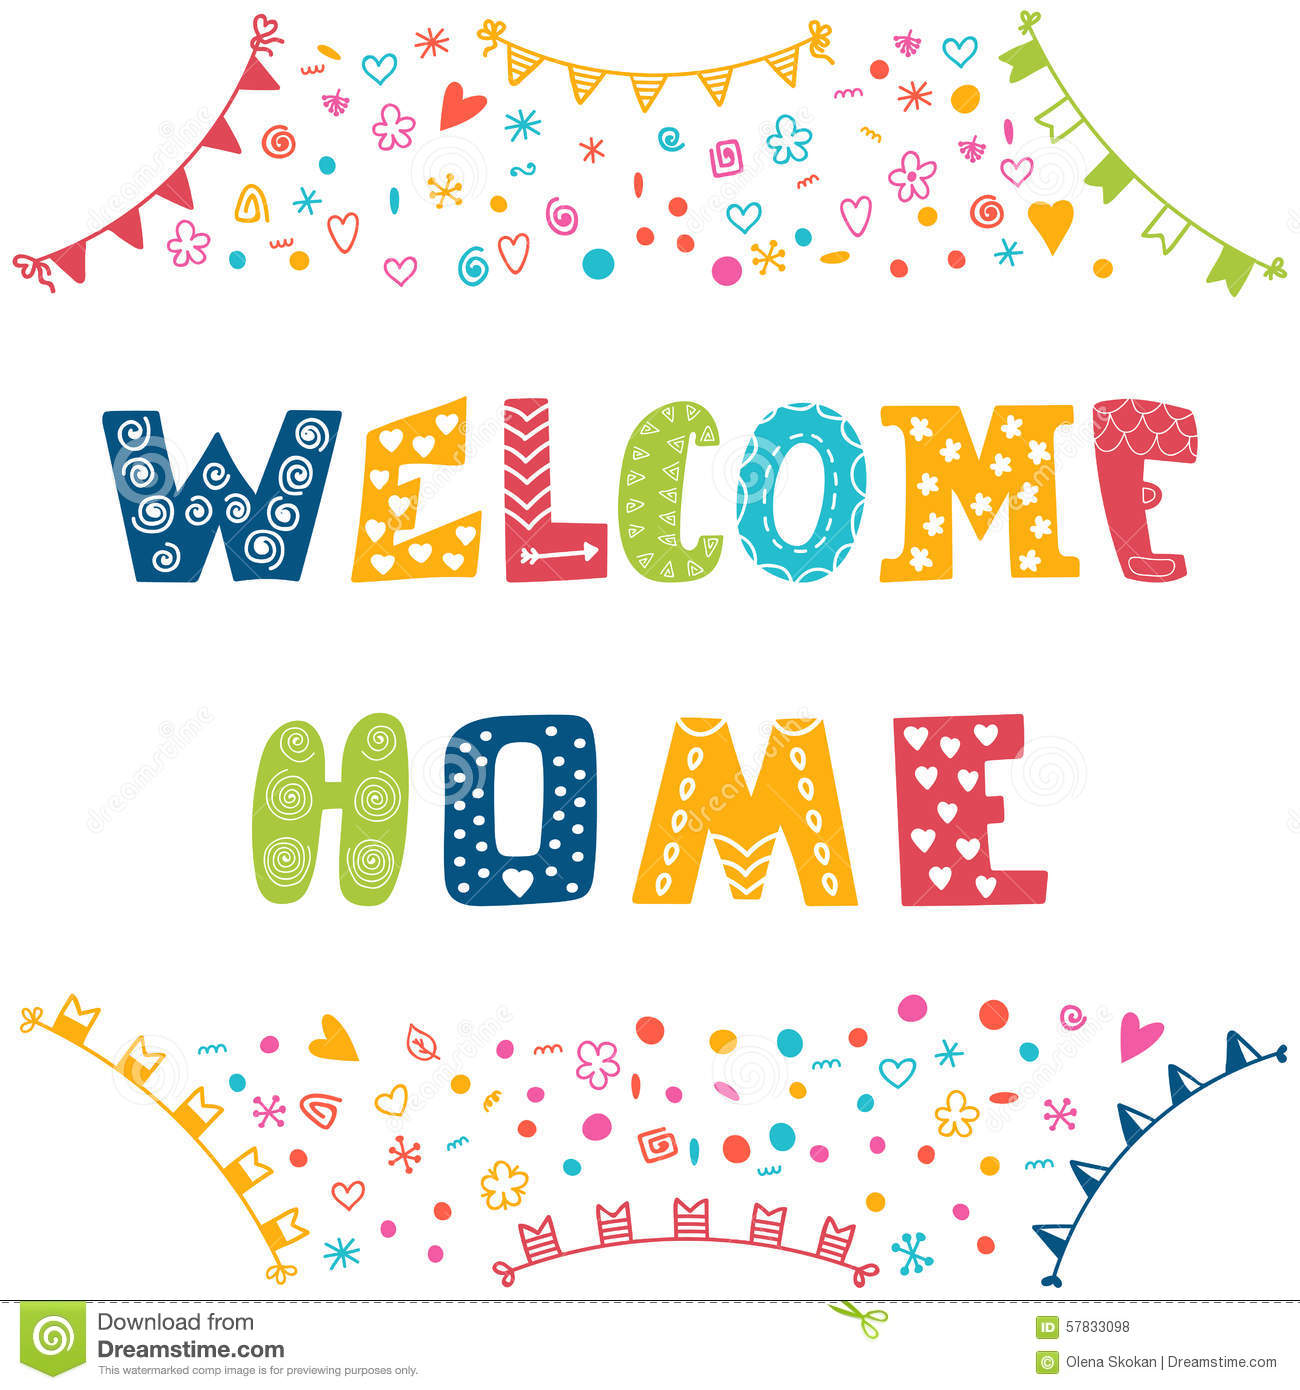 Welcome home text with colorful design e-Welcome home text with colorful design elements Royalty Free Stock Photos-18